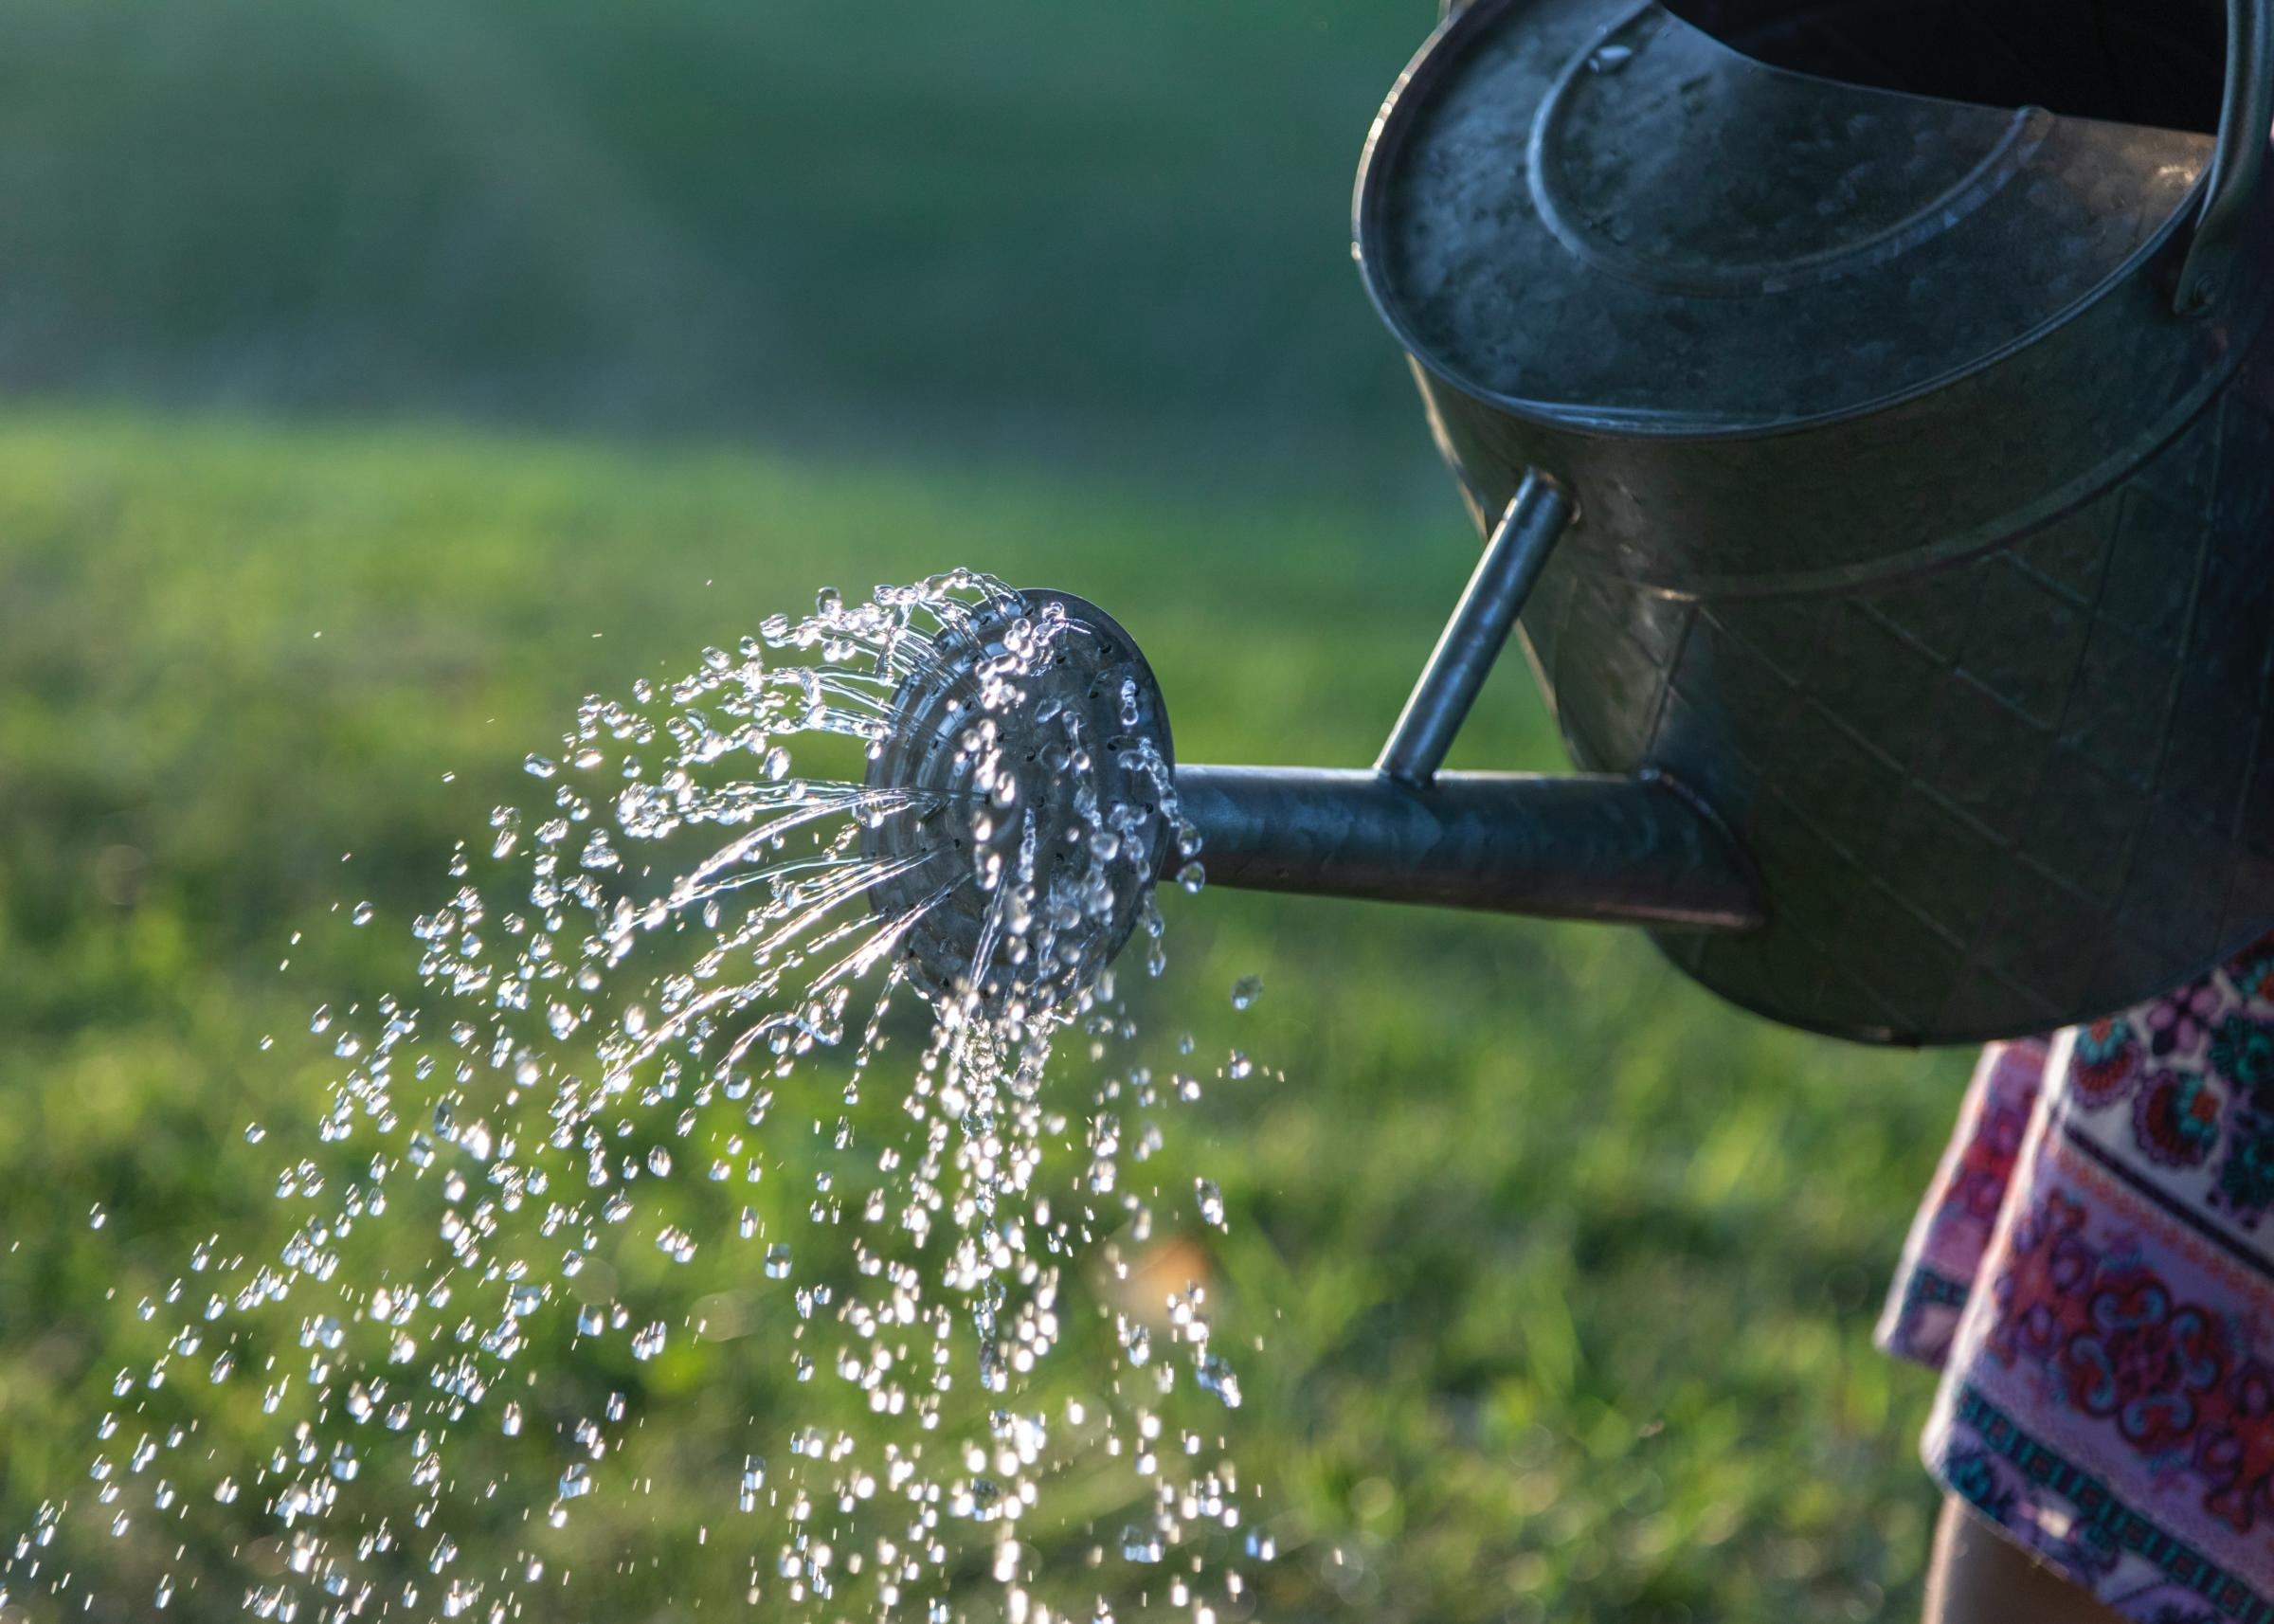 water spraying from a watering can